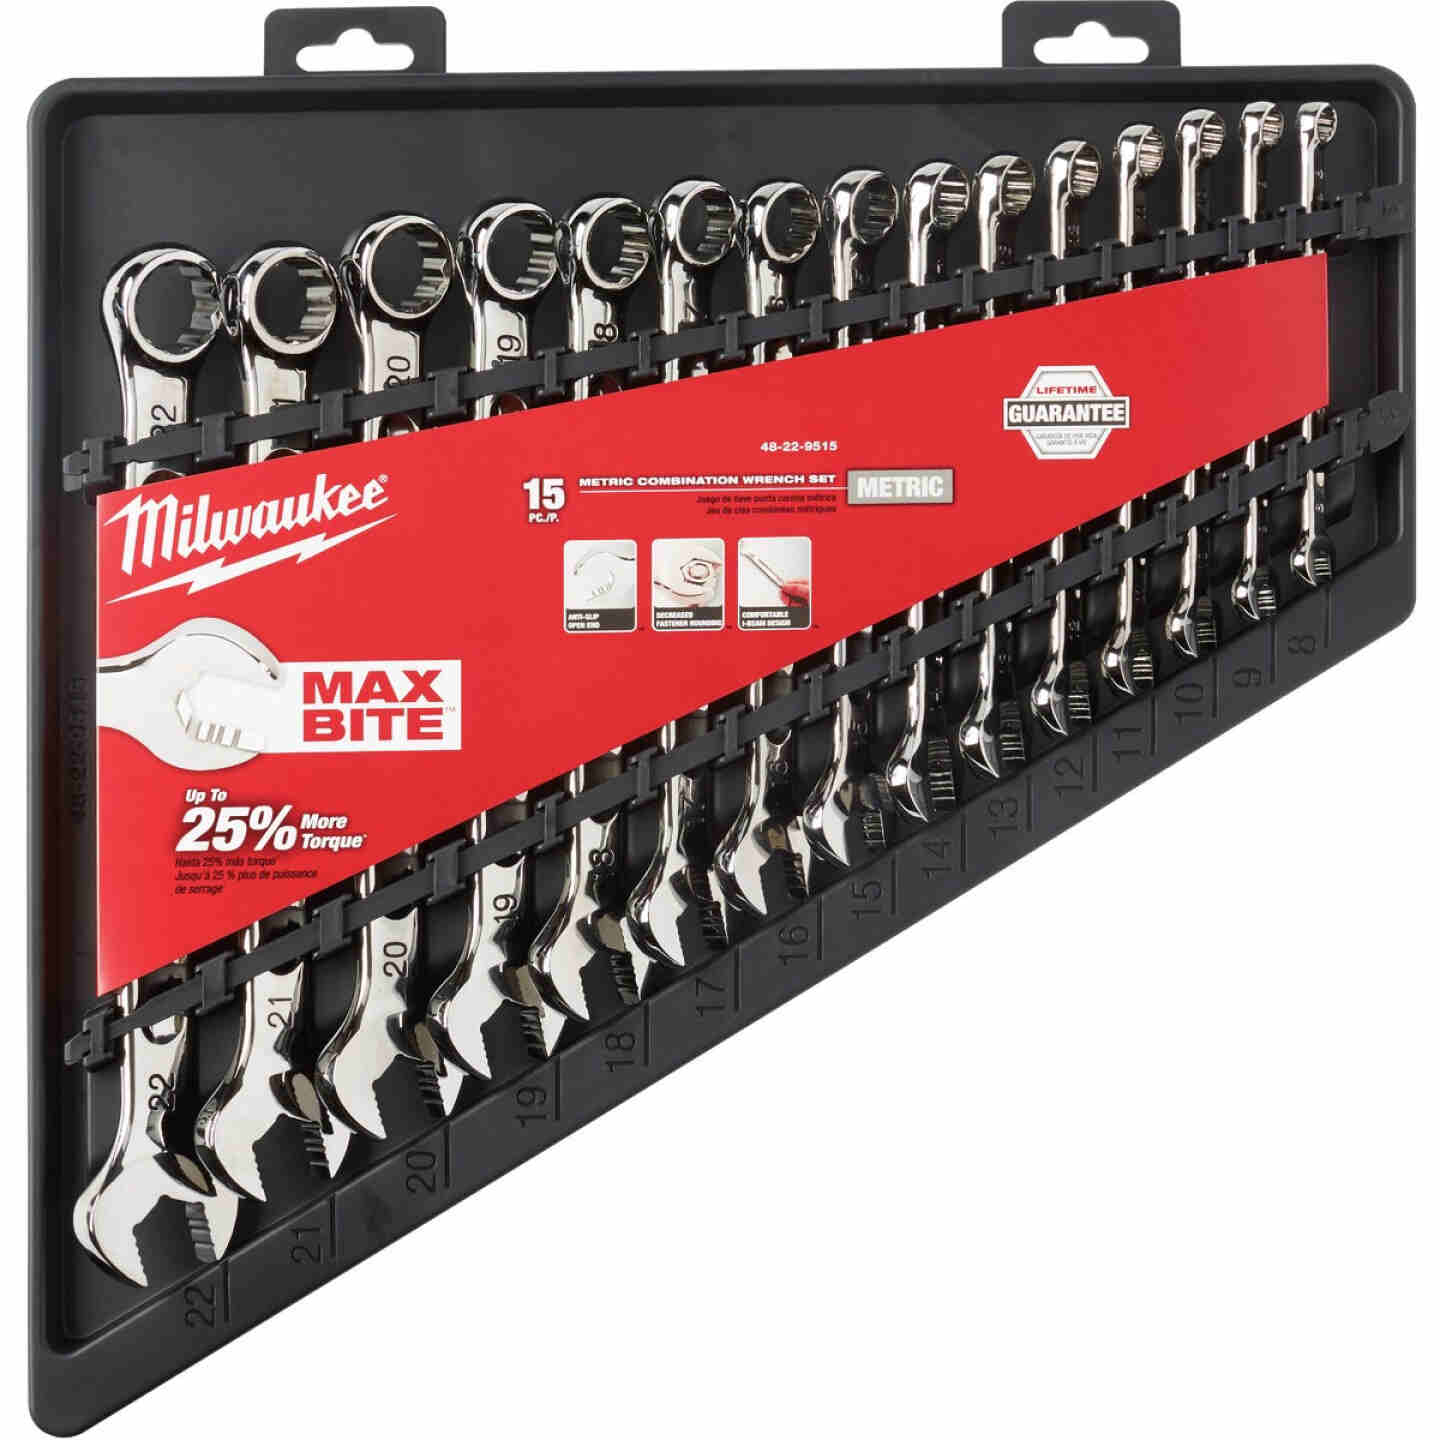 Milwaukee Metric 12-Point Combination Wrench Set (15-Piece) Image 2